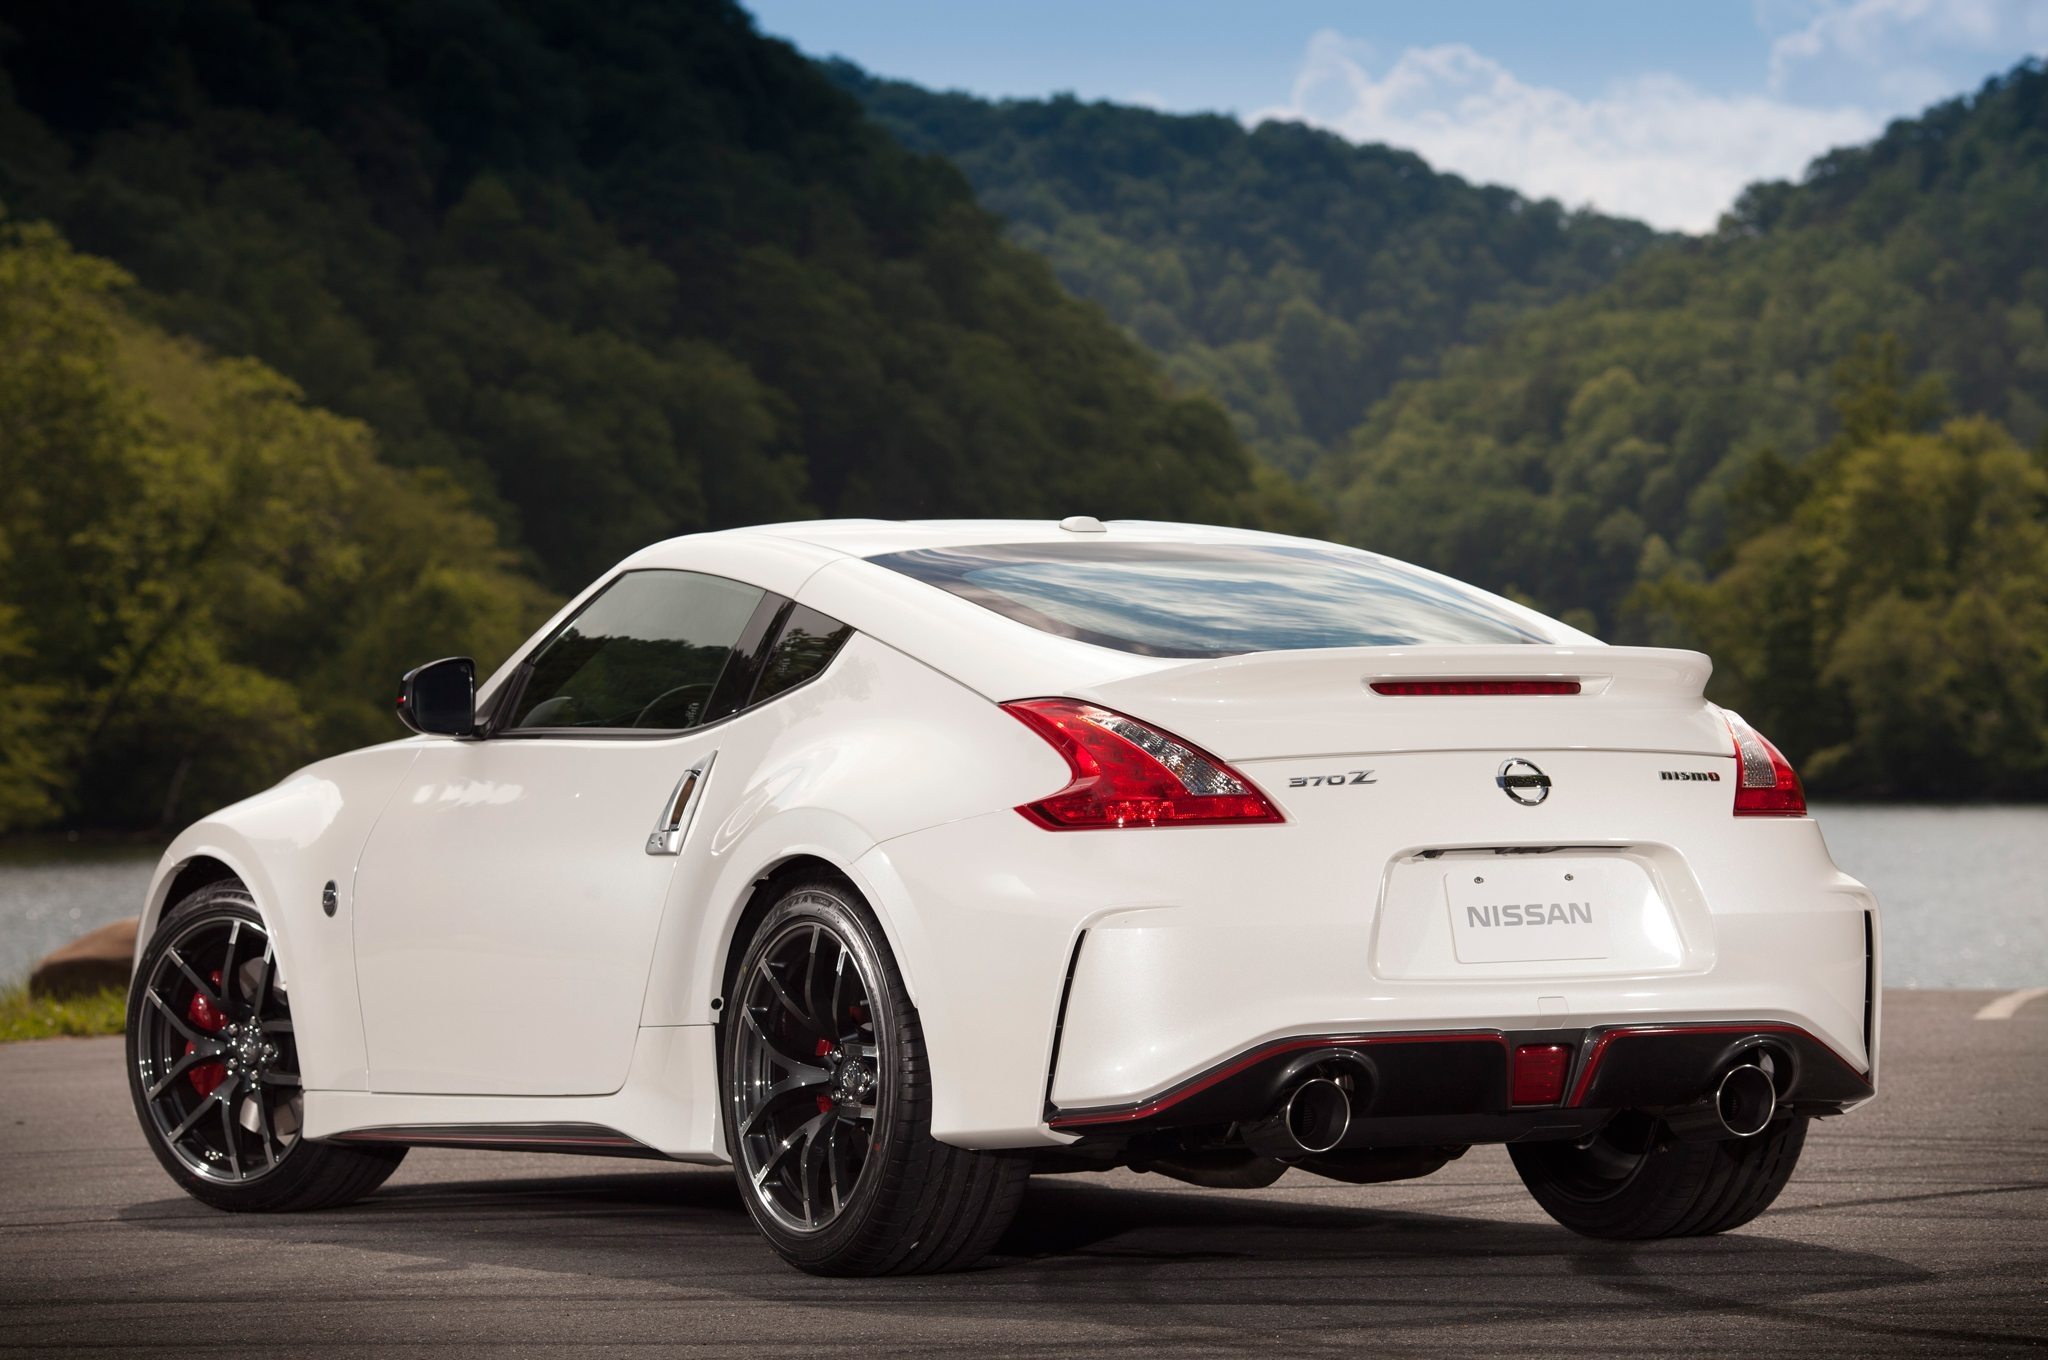 47 The Best 2020 Nissan 370Z Nismo Photos